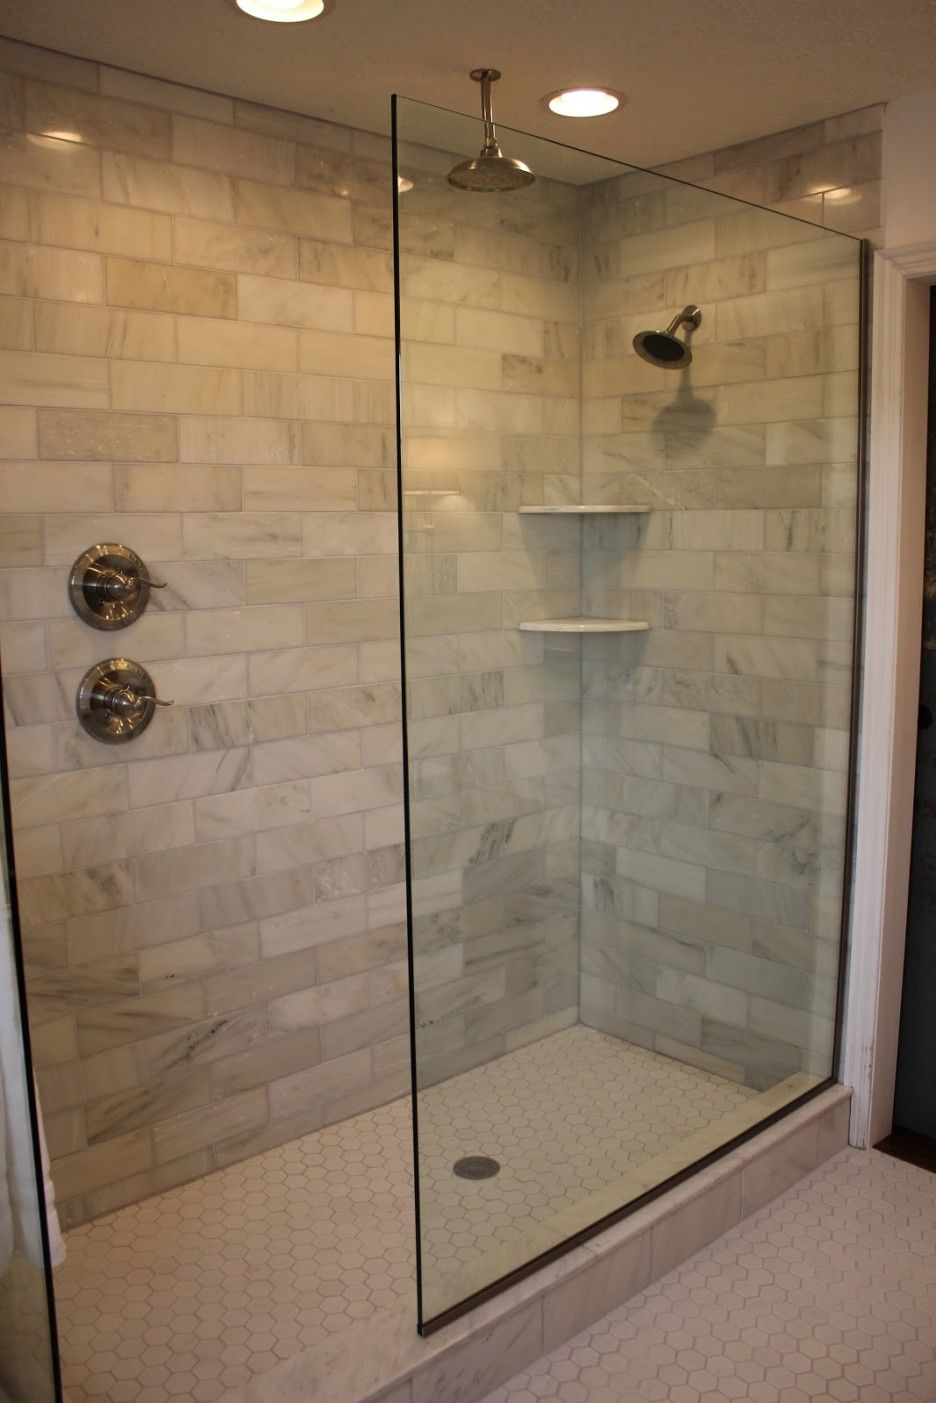 Incredible Doorless Walk In Shower Designs Ideas. Interesting Glass  Doorless Walk In Shower Feature Double Contemporary Shower Head In Polished  Chrome And ...